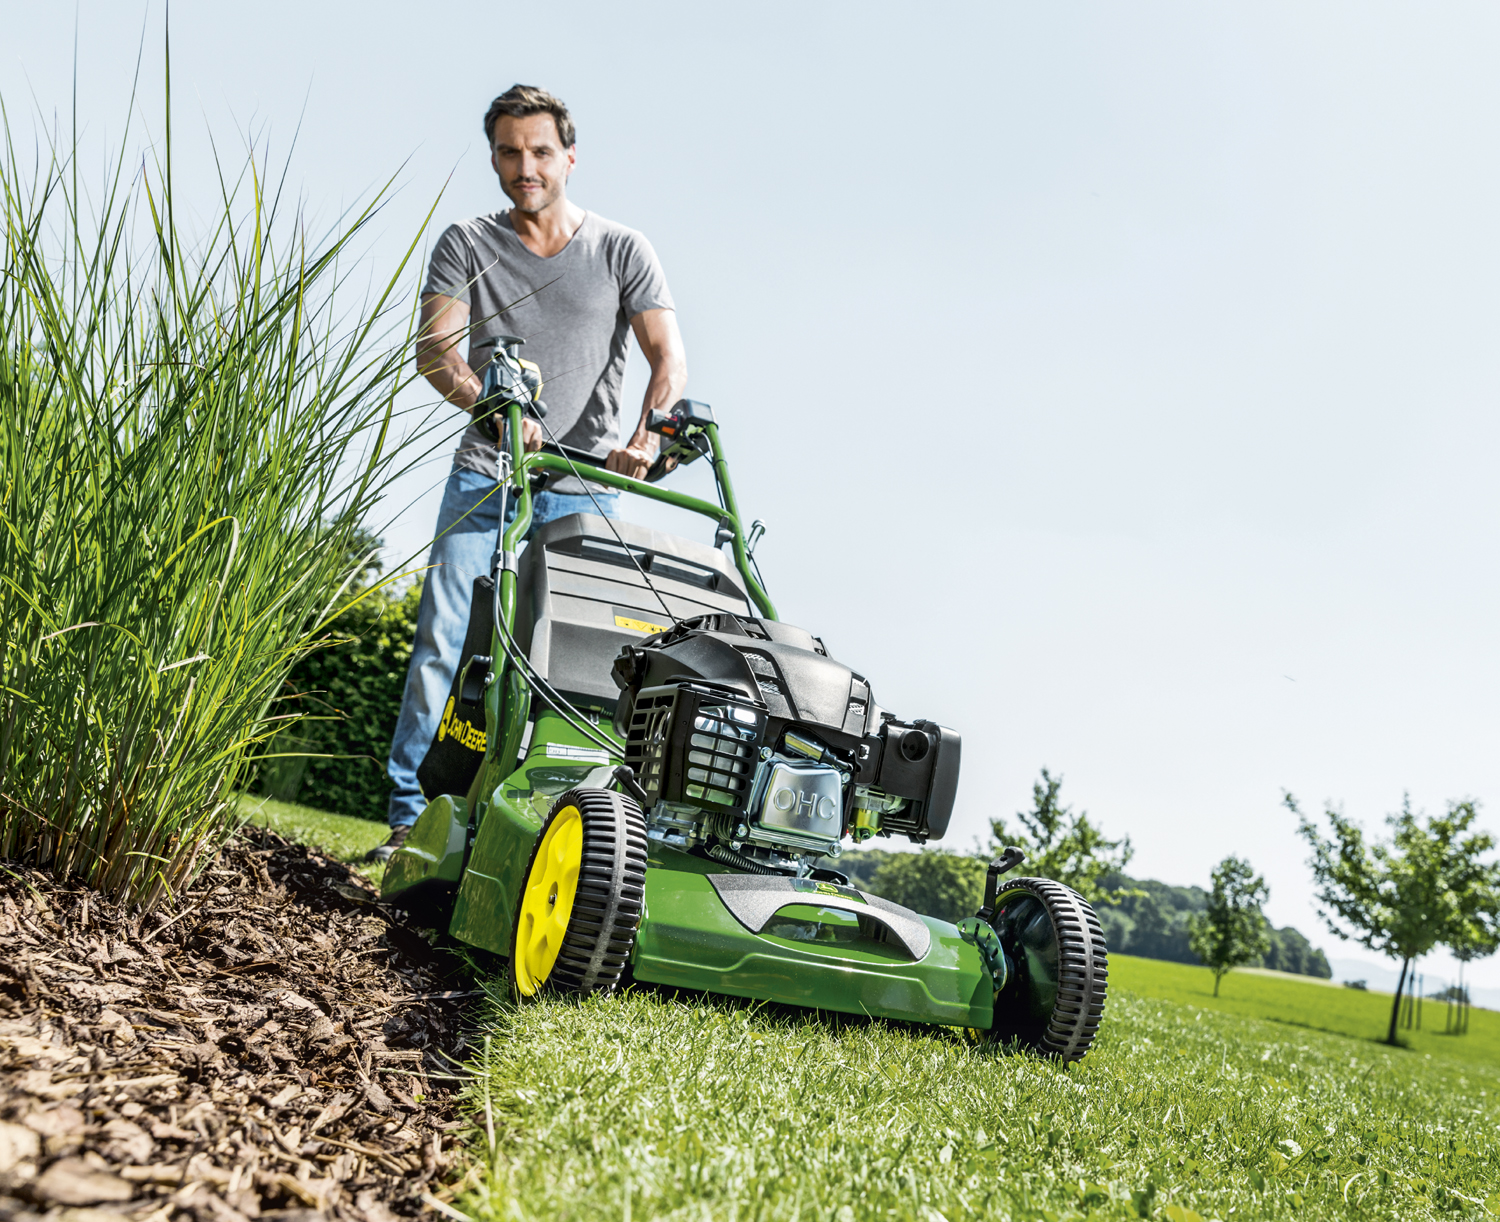 John Deere R54RKB lawnmower